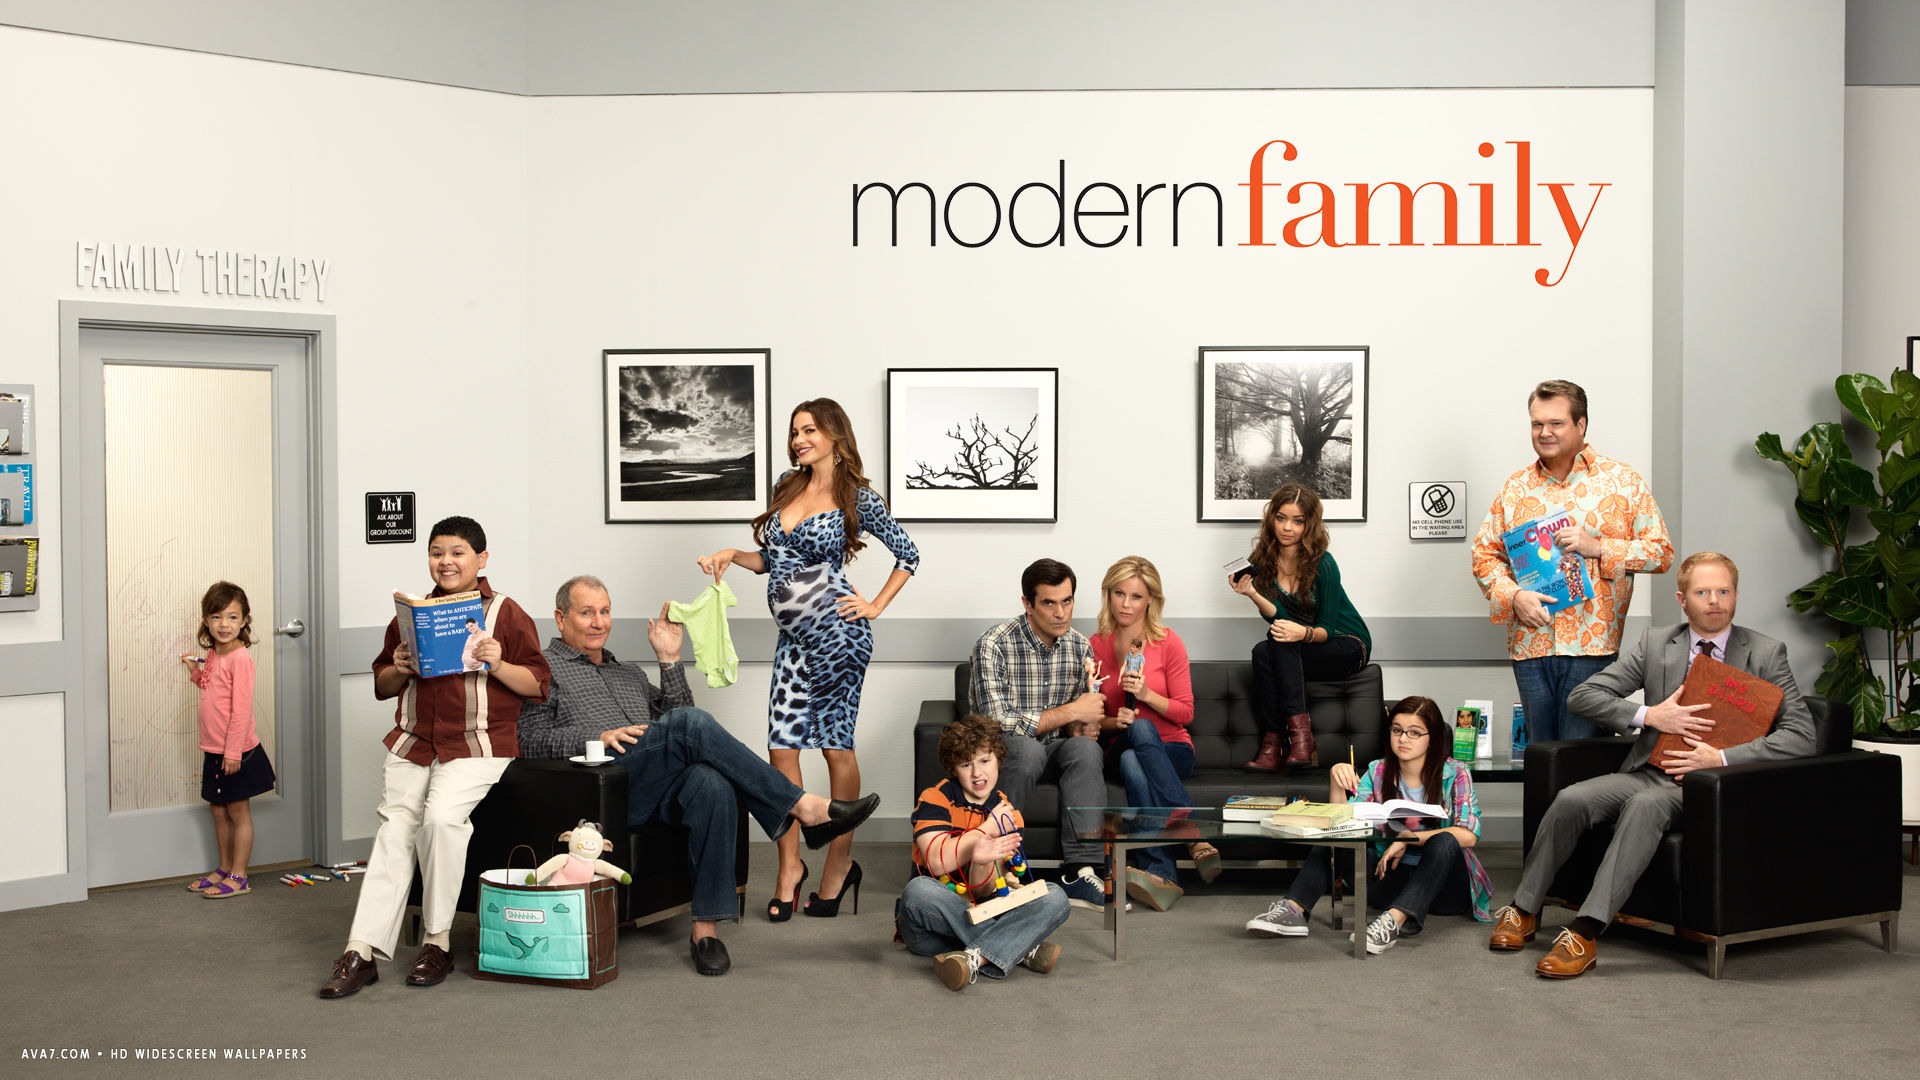 Modern family tv series show hd widescreen wallpaper tv for Modern family wallpaper